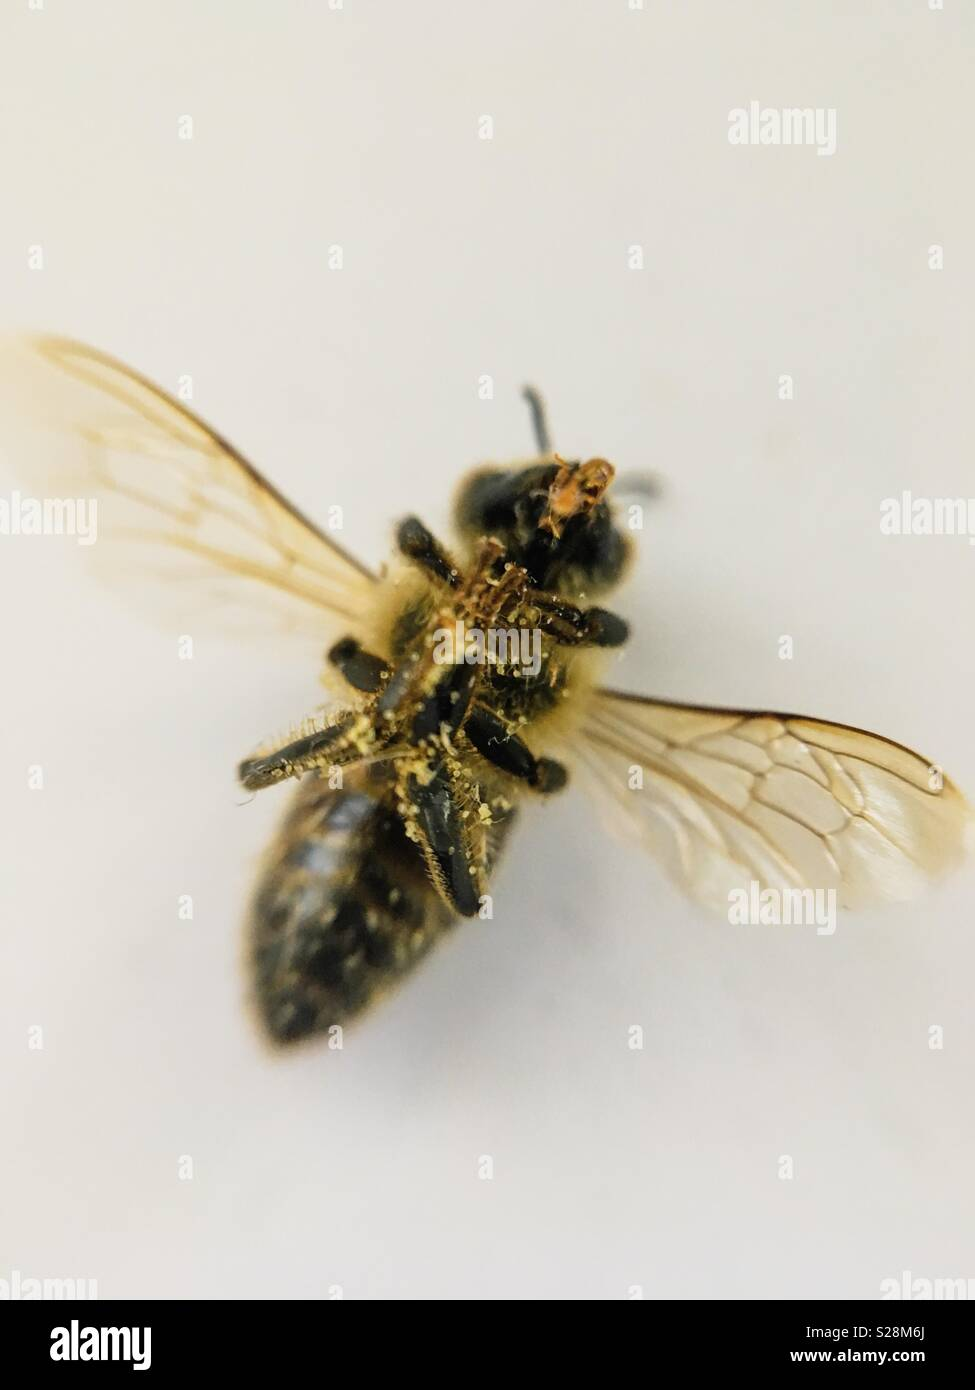 Dead Bee on its Back - Stock Image